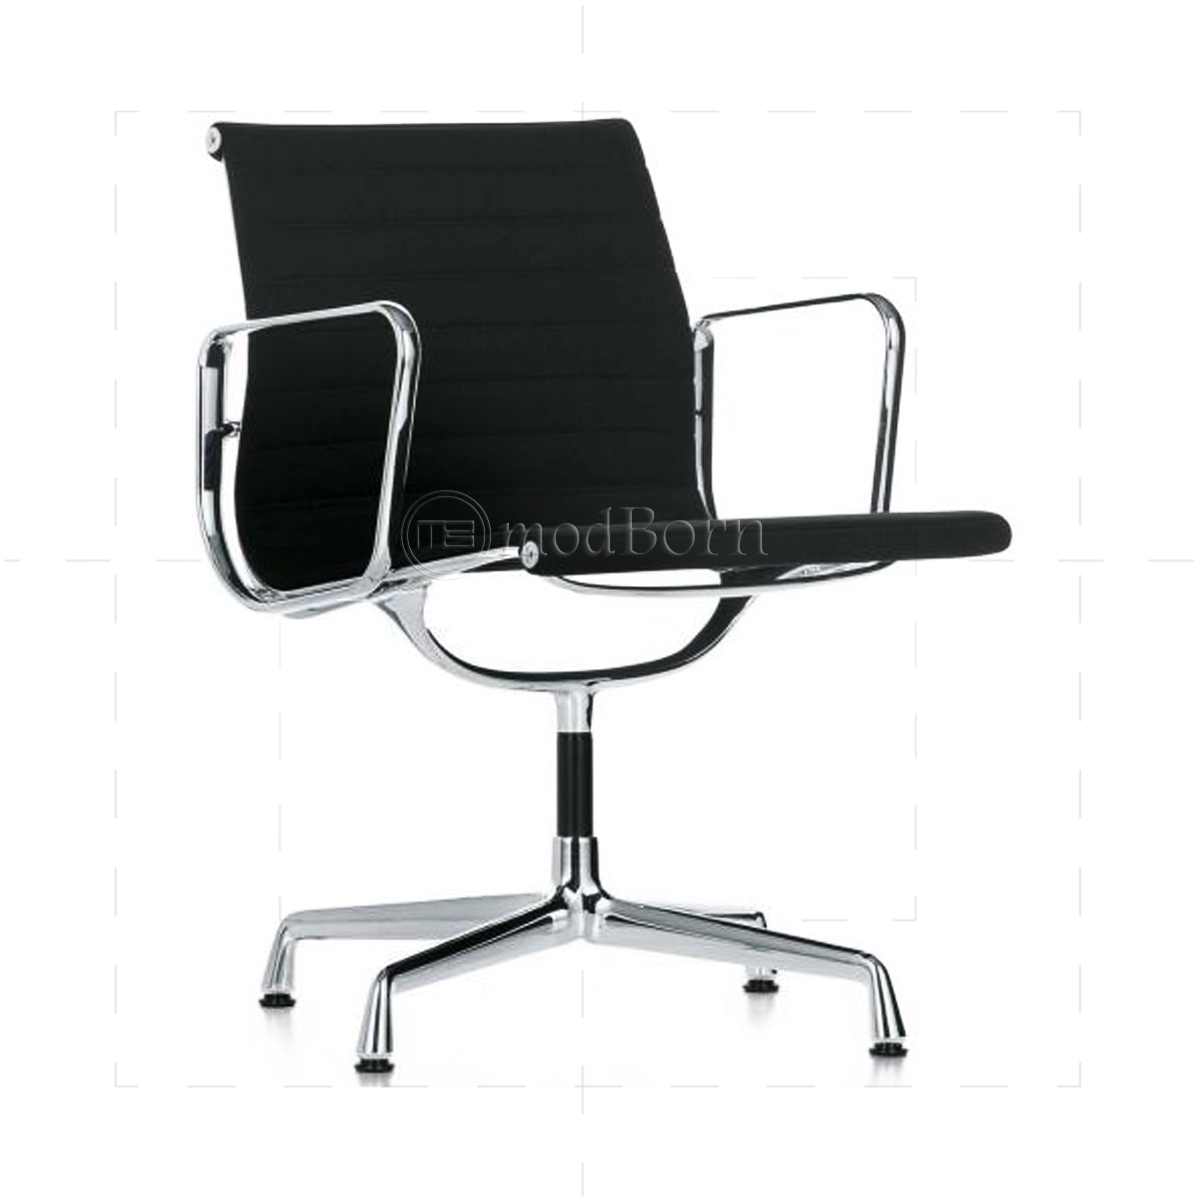 ea108 eames style office chair low back ribbed black leather replica. Black Bedroom Furniture Sets. Home Design Ideas